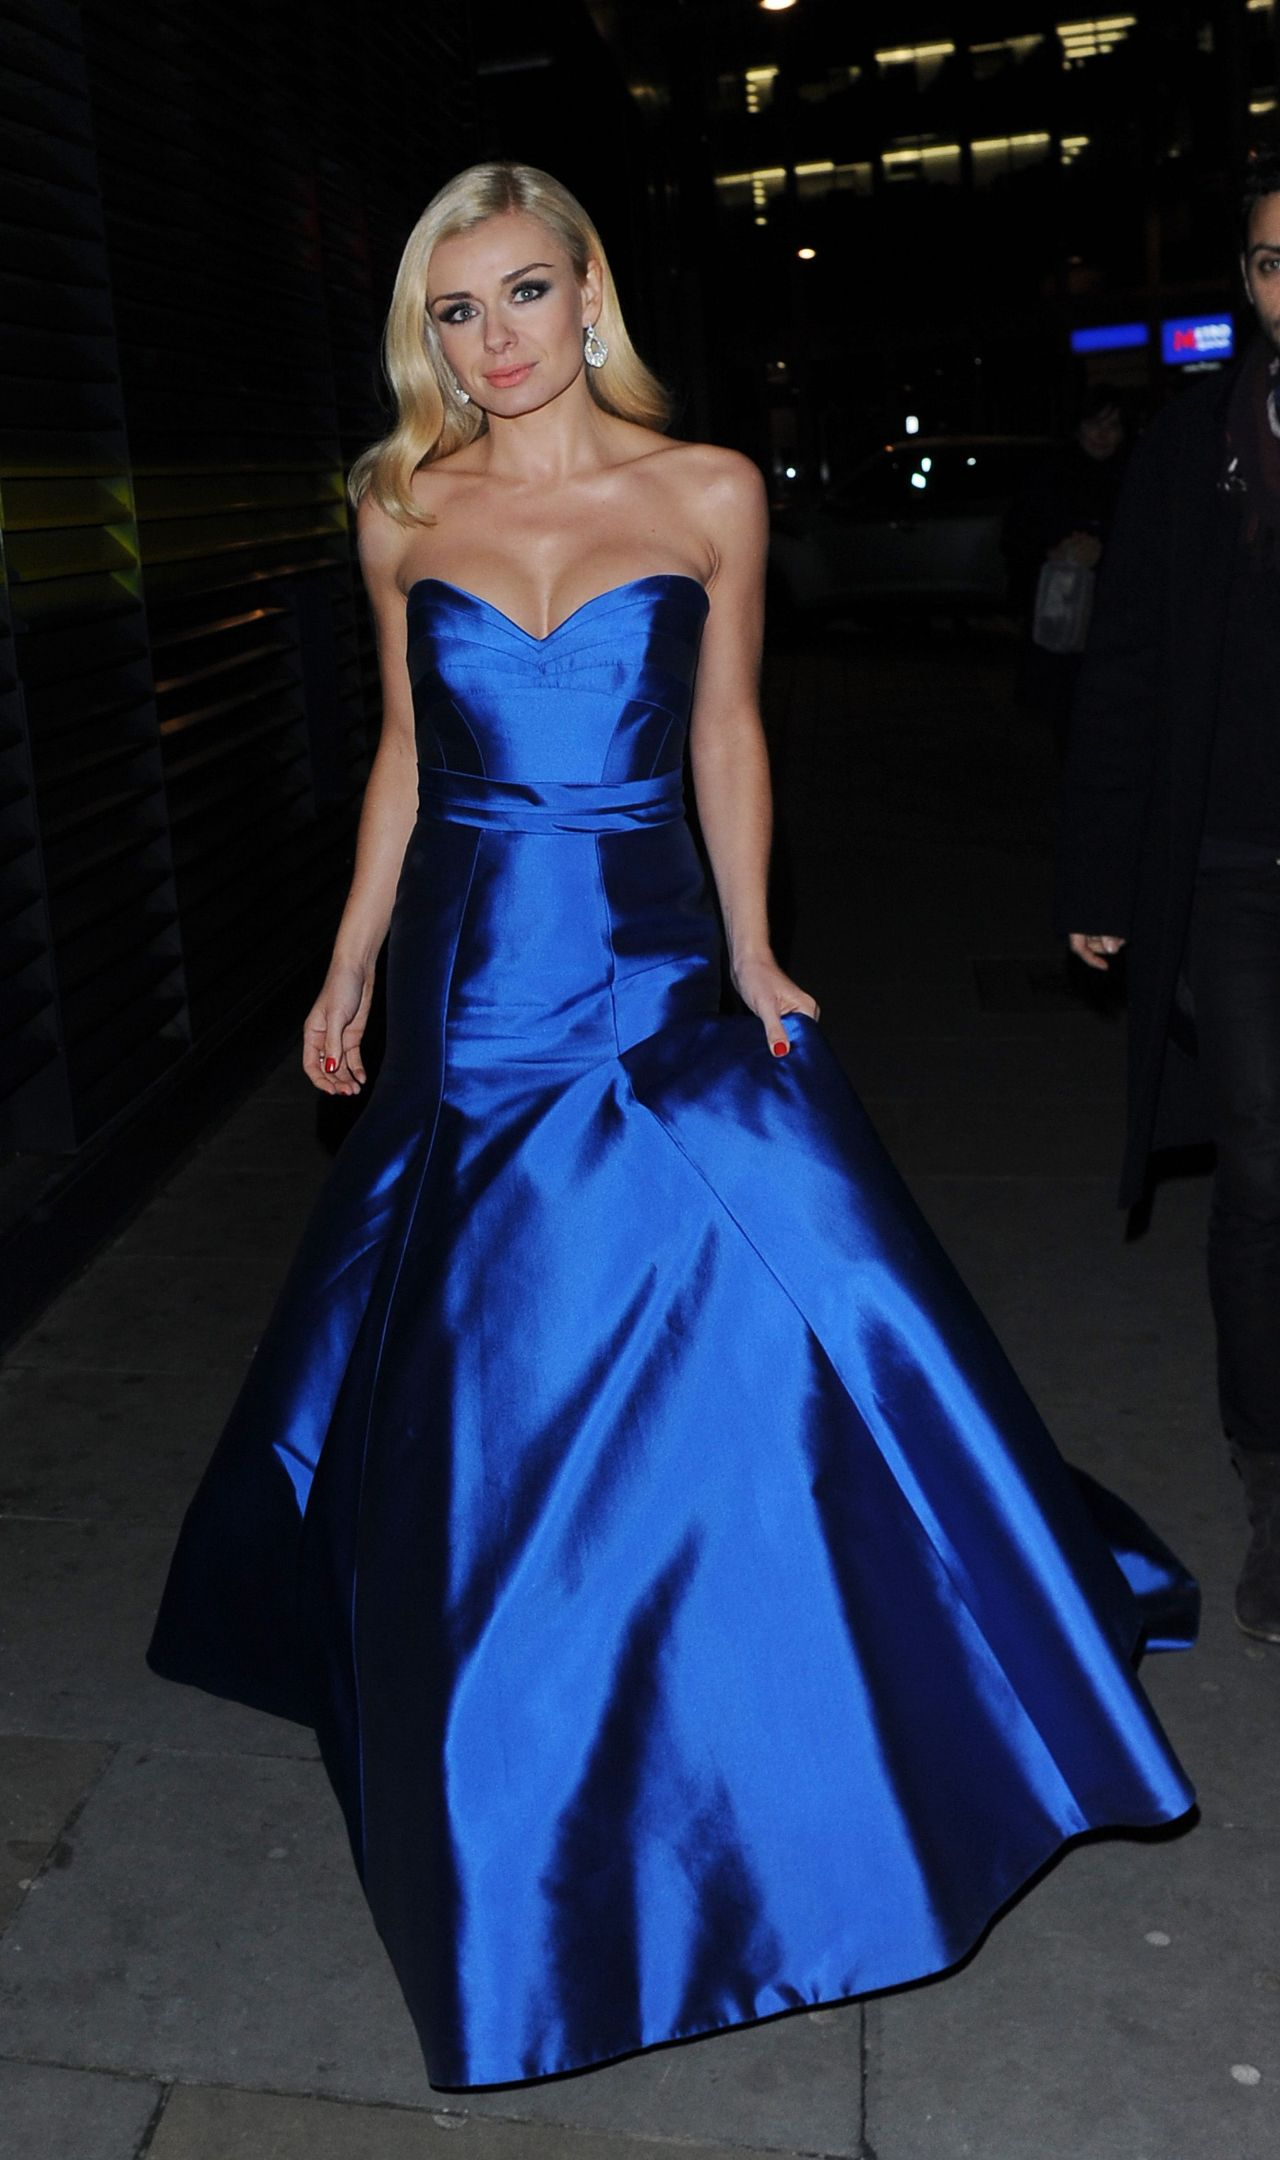 Katherine Jenkins Attends Martell Event at Brasserie Blanc Covent Garden - January 2014